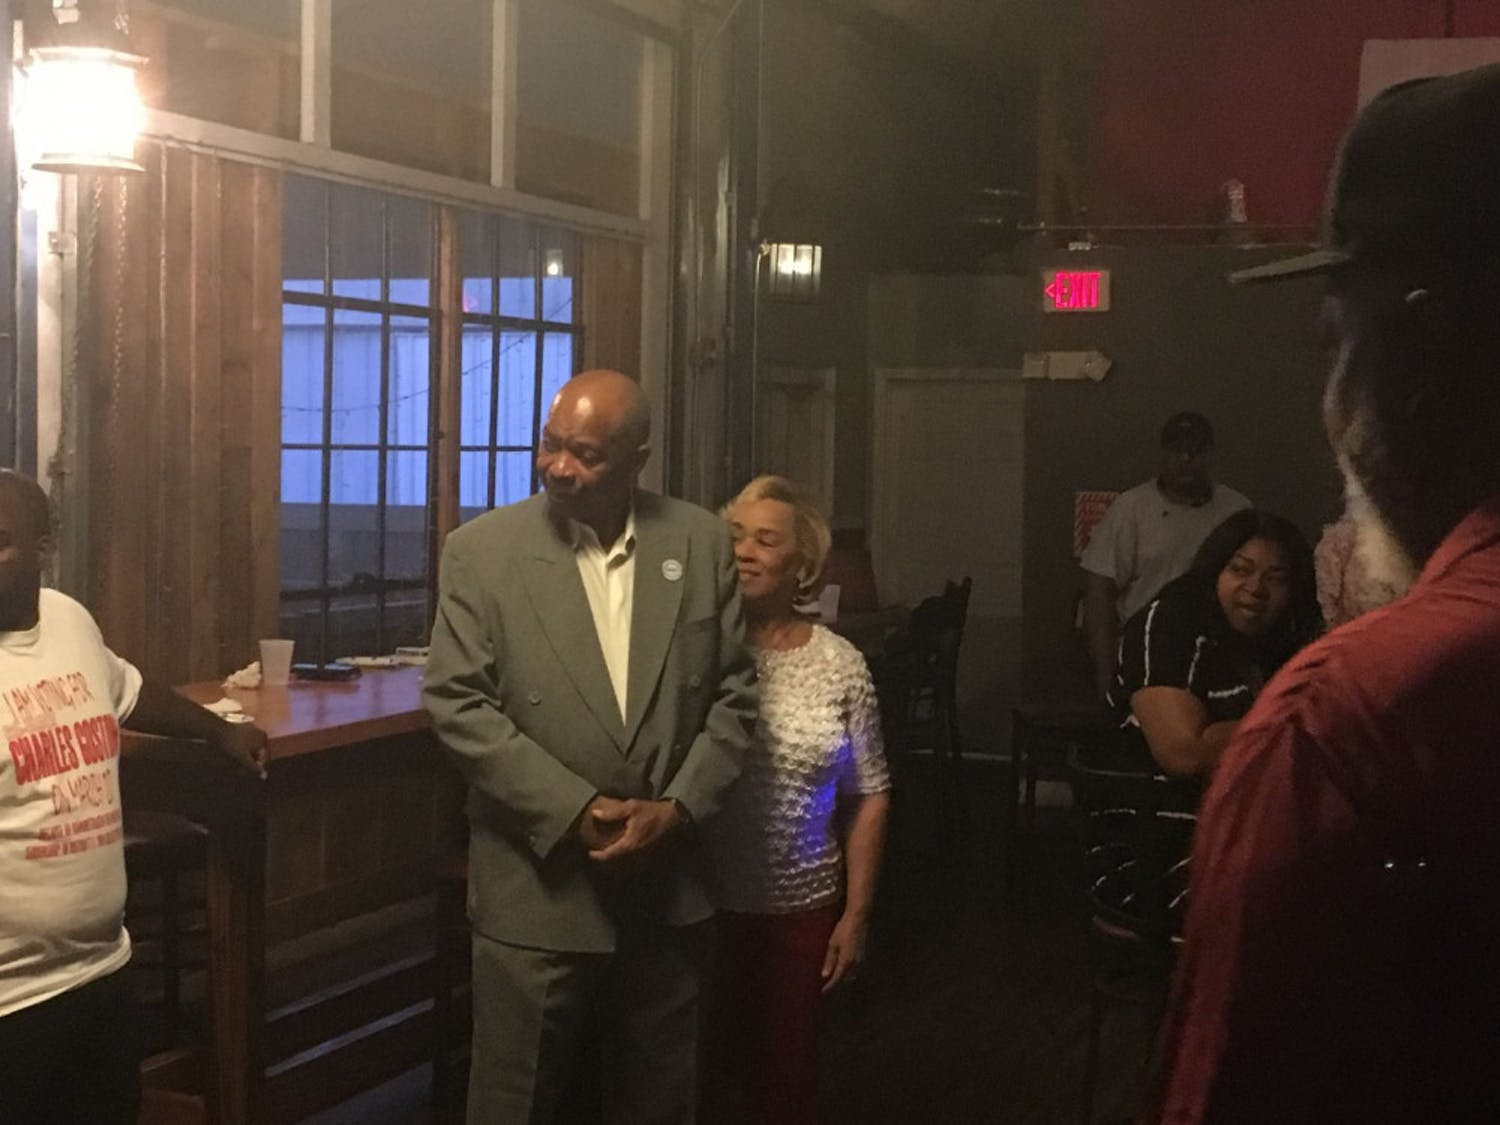 District 1 Commissioner Charles Goston stands surrounded by supporters after conceding the runoff election between him and Gigi Simmons.